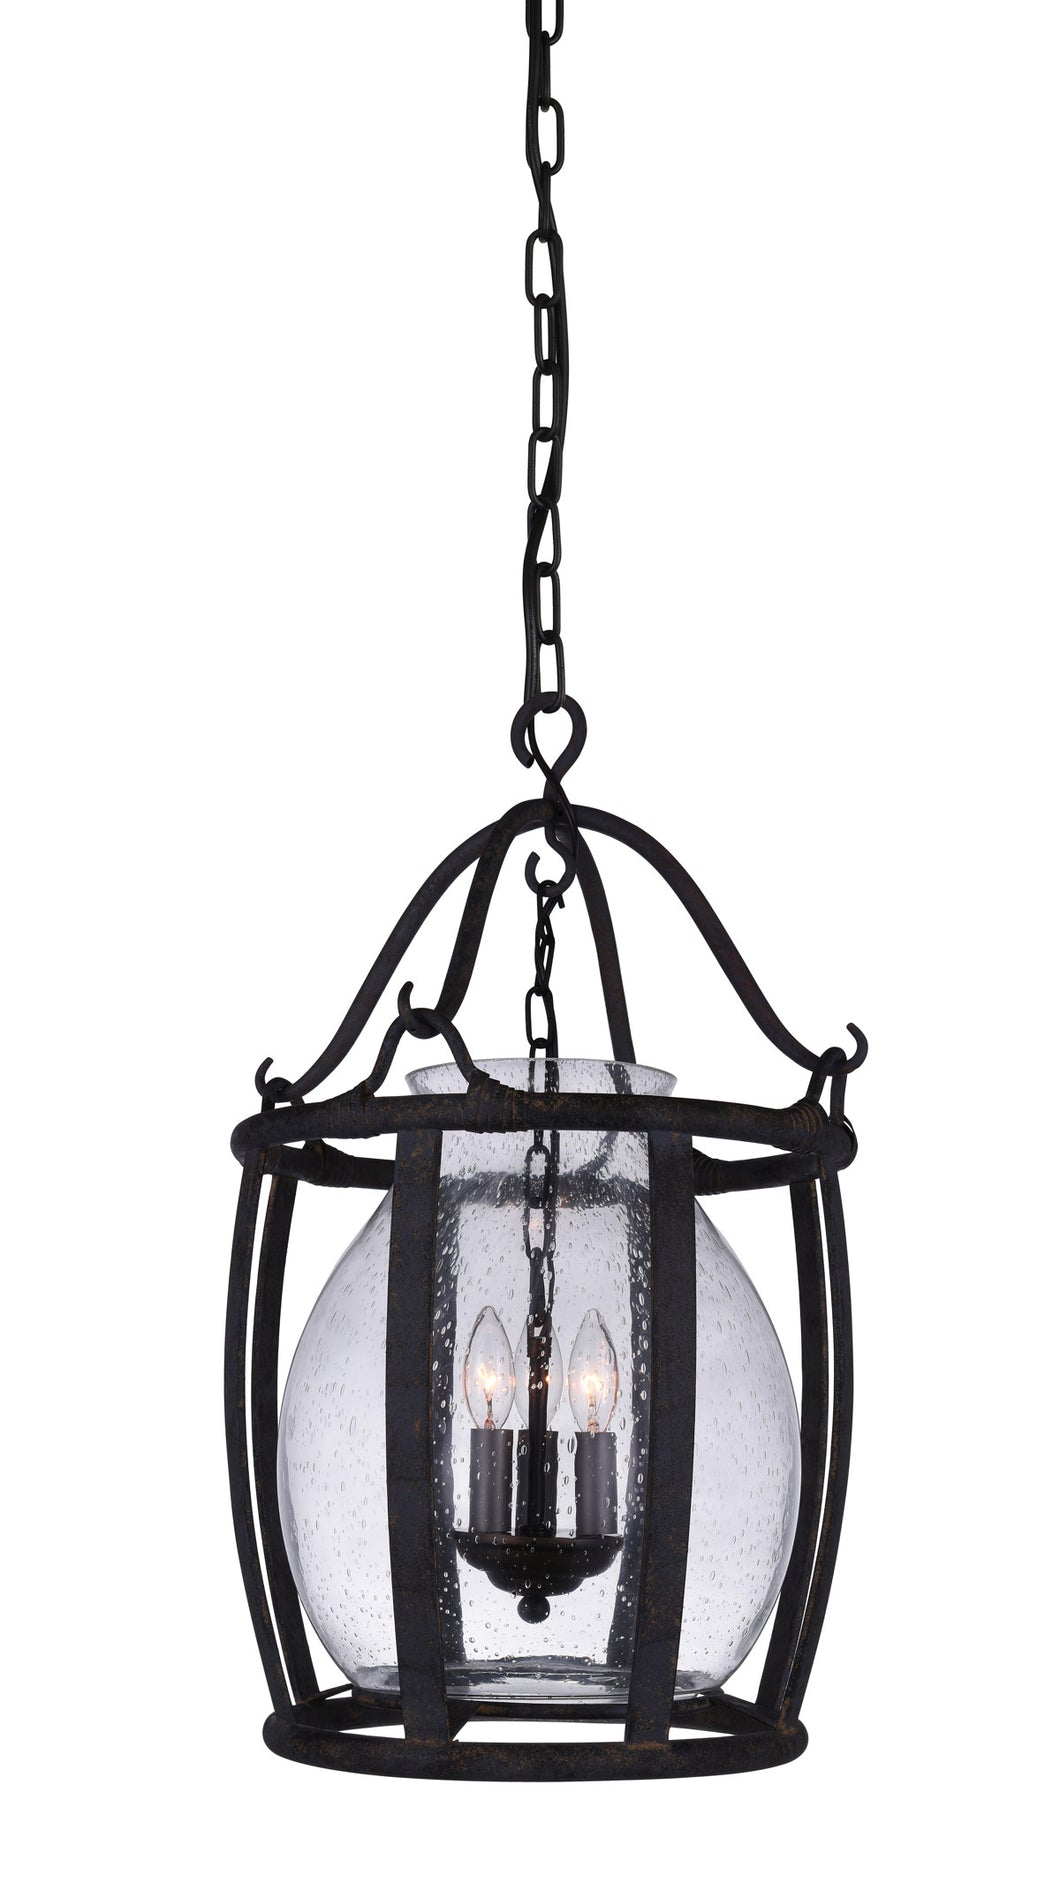 3 Light Up Pendant with Antique Black finish